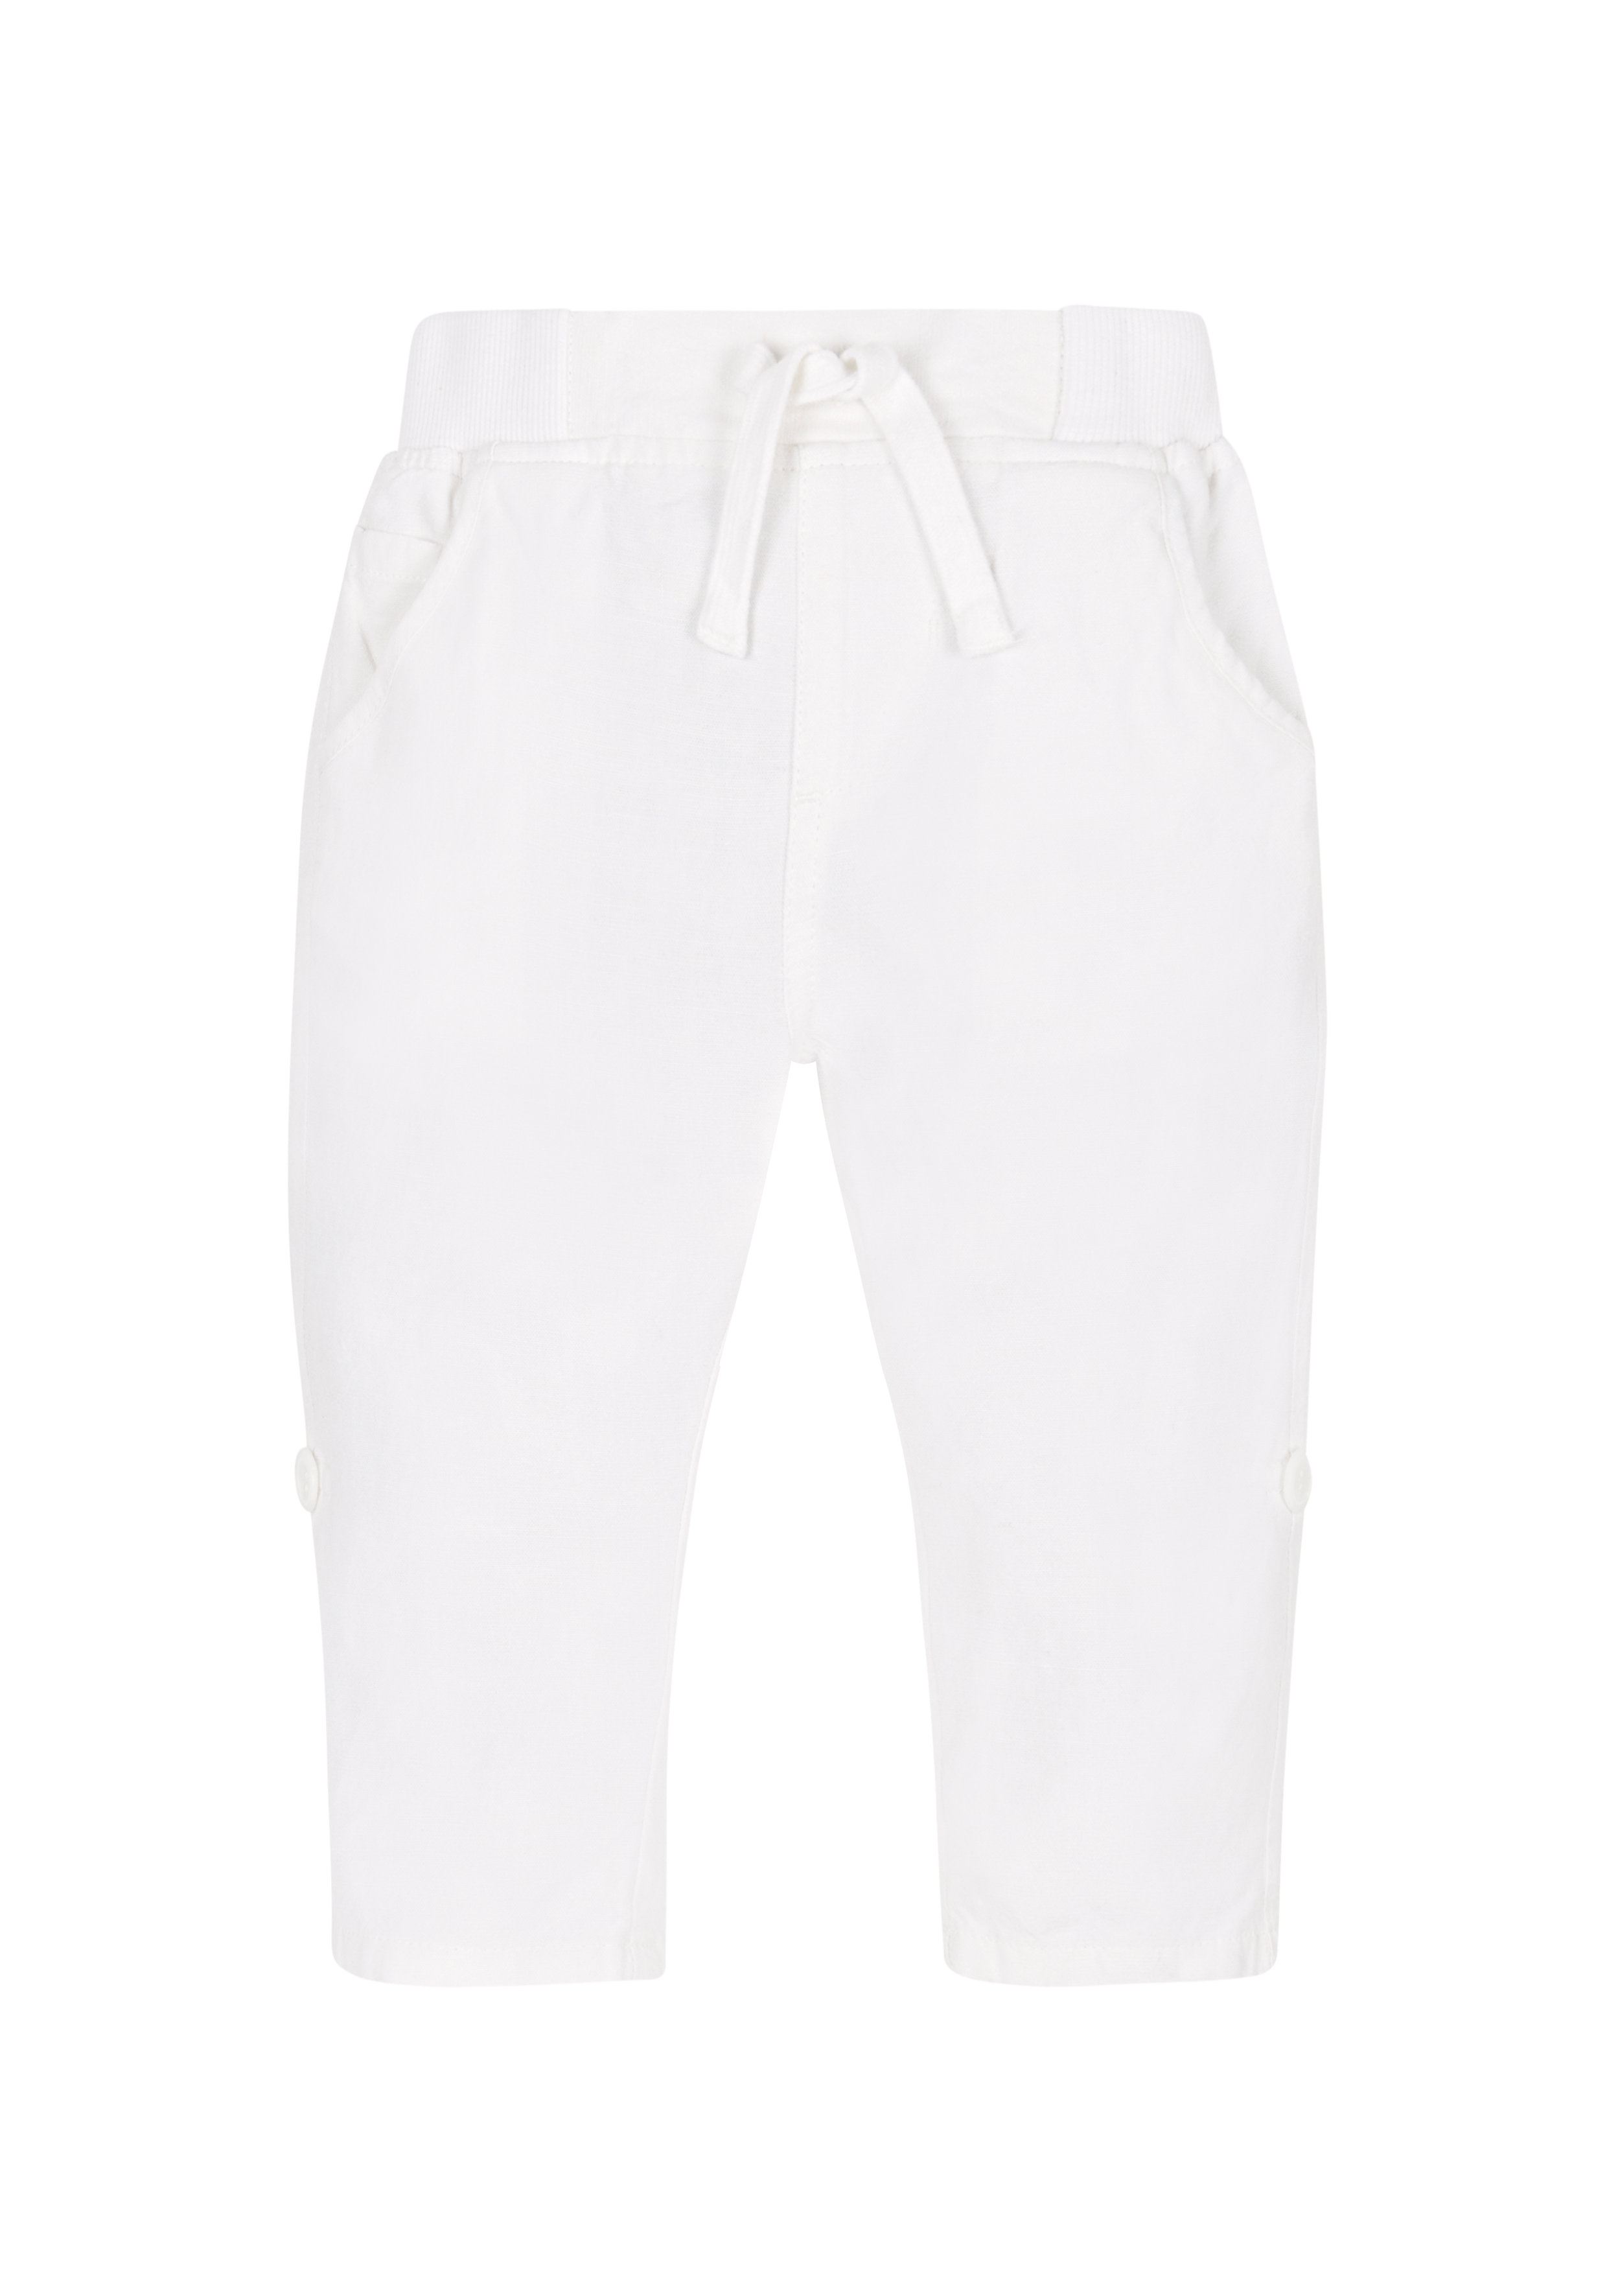 Mothercare | Boys Linen Roll Up Trousers - White